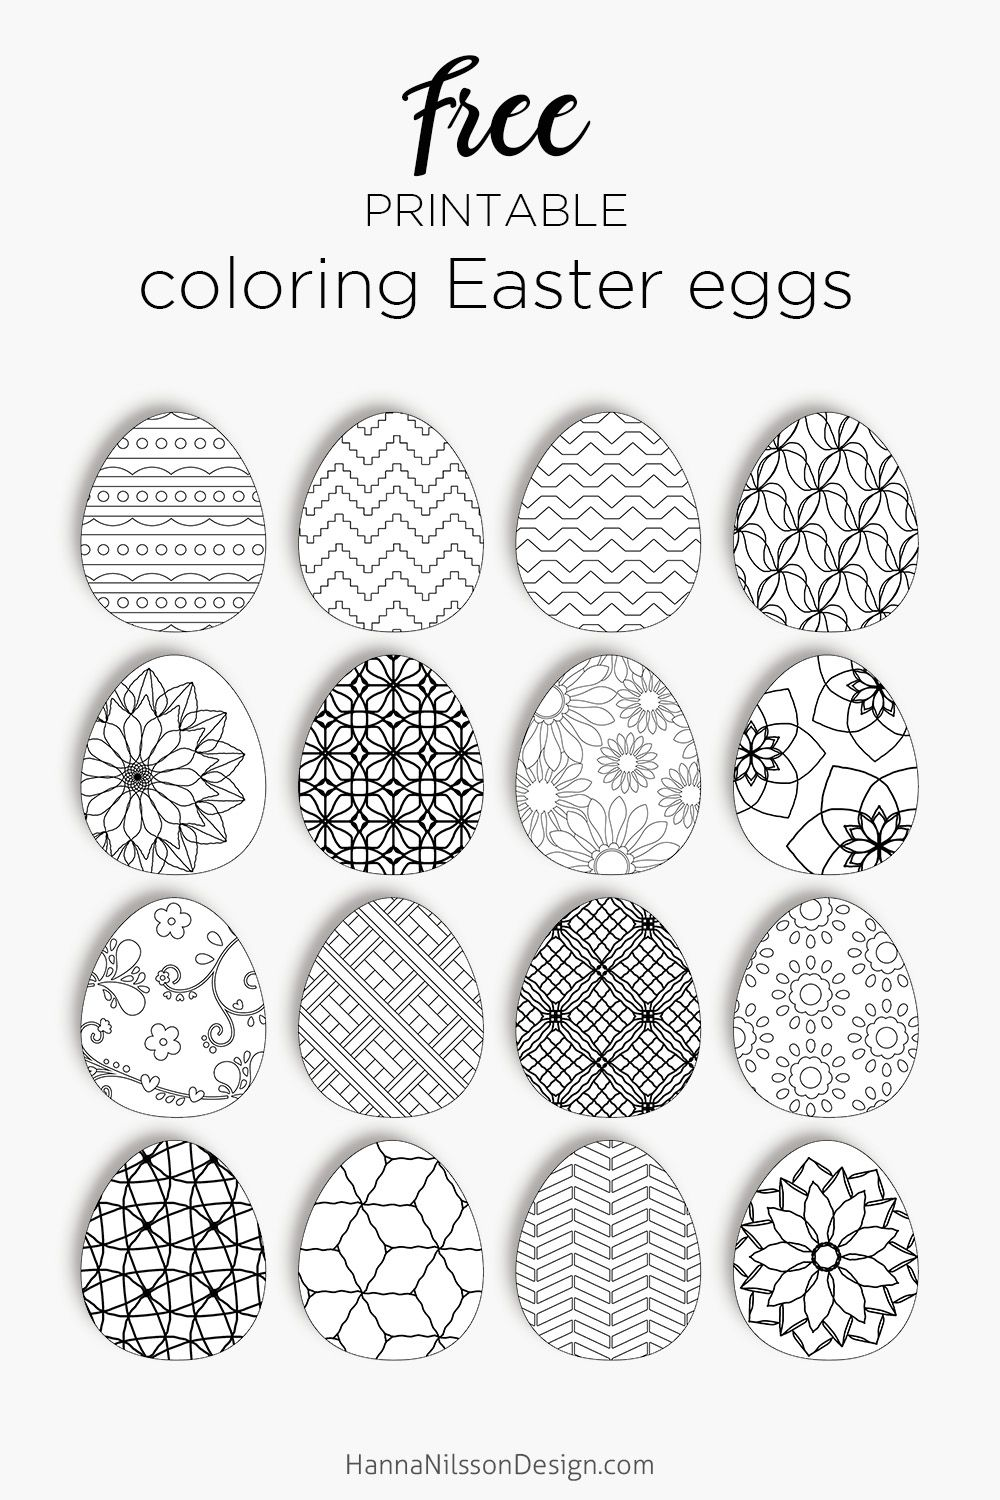 Interactive Coloring Pages - Printable Color